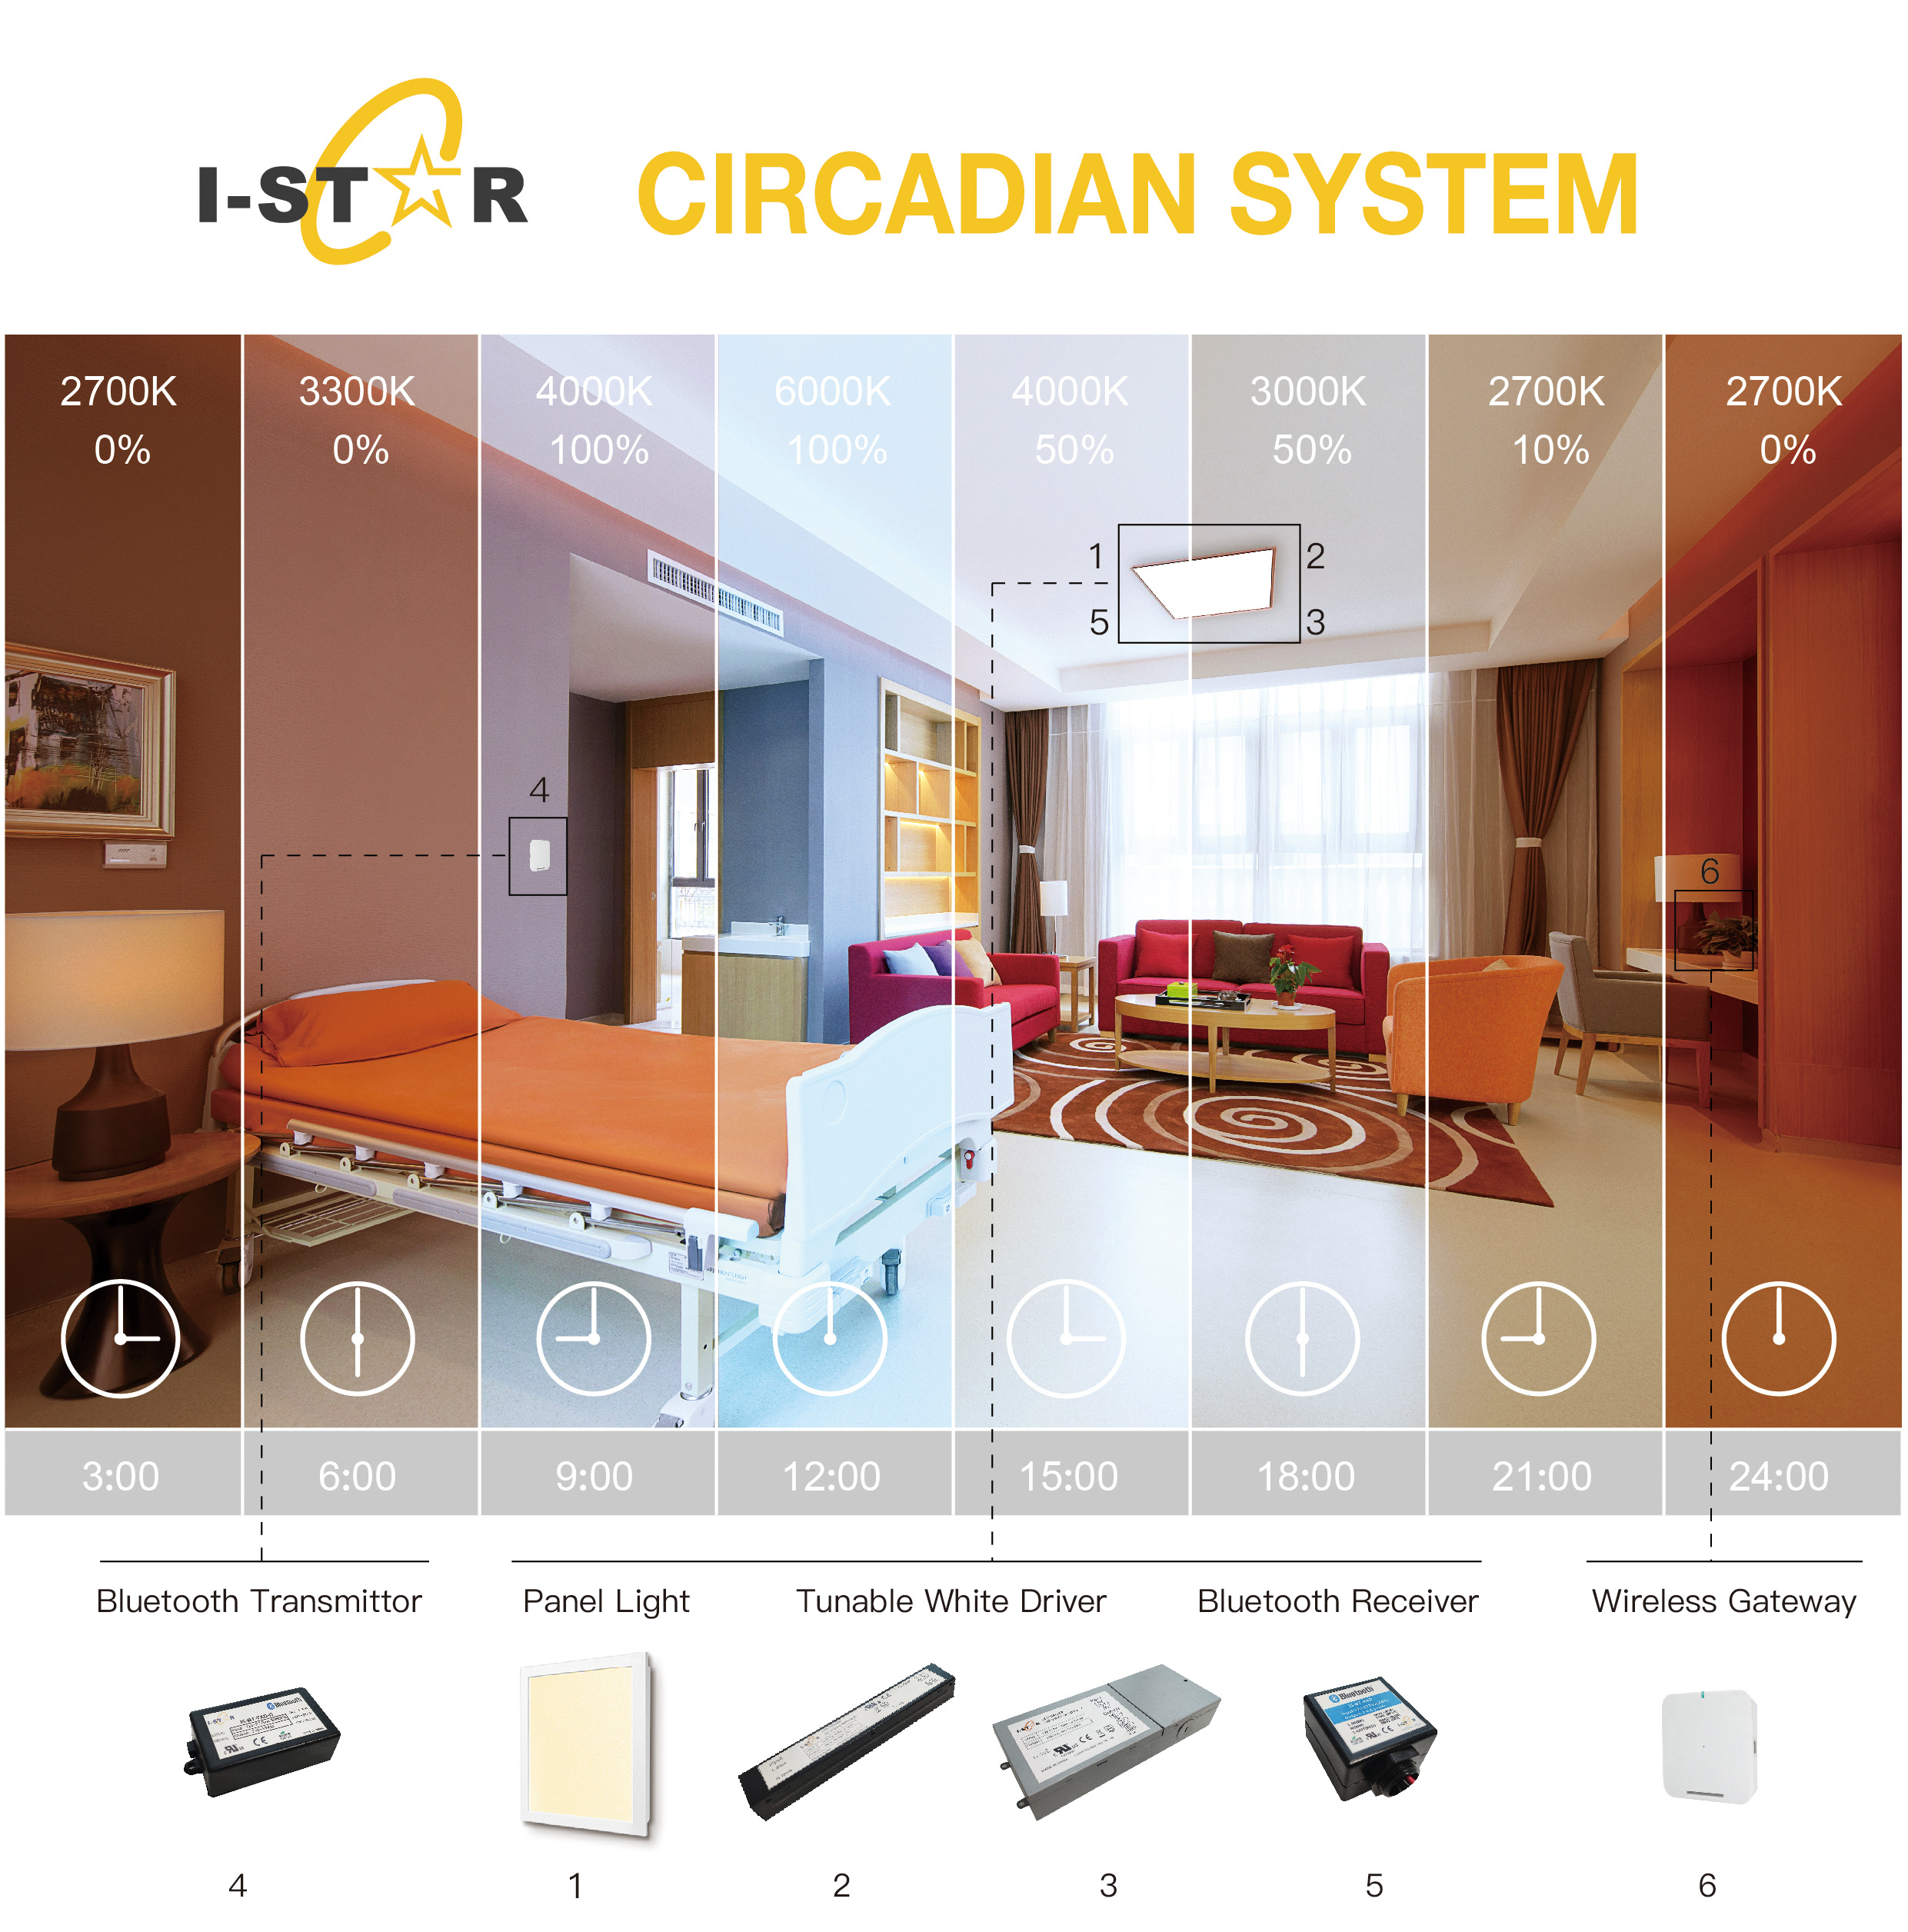 Circadian System for Color, Temperature & Dimming Controls